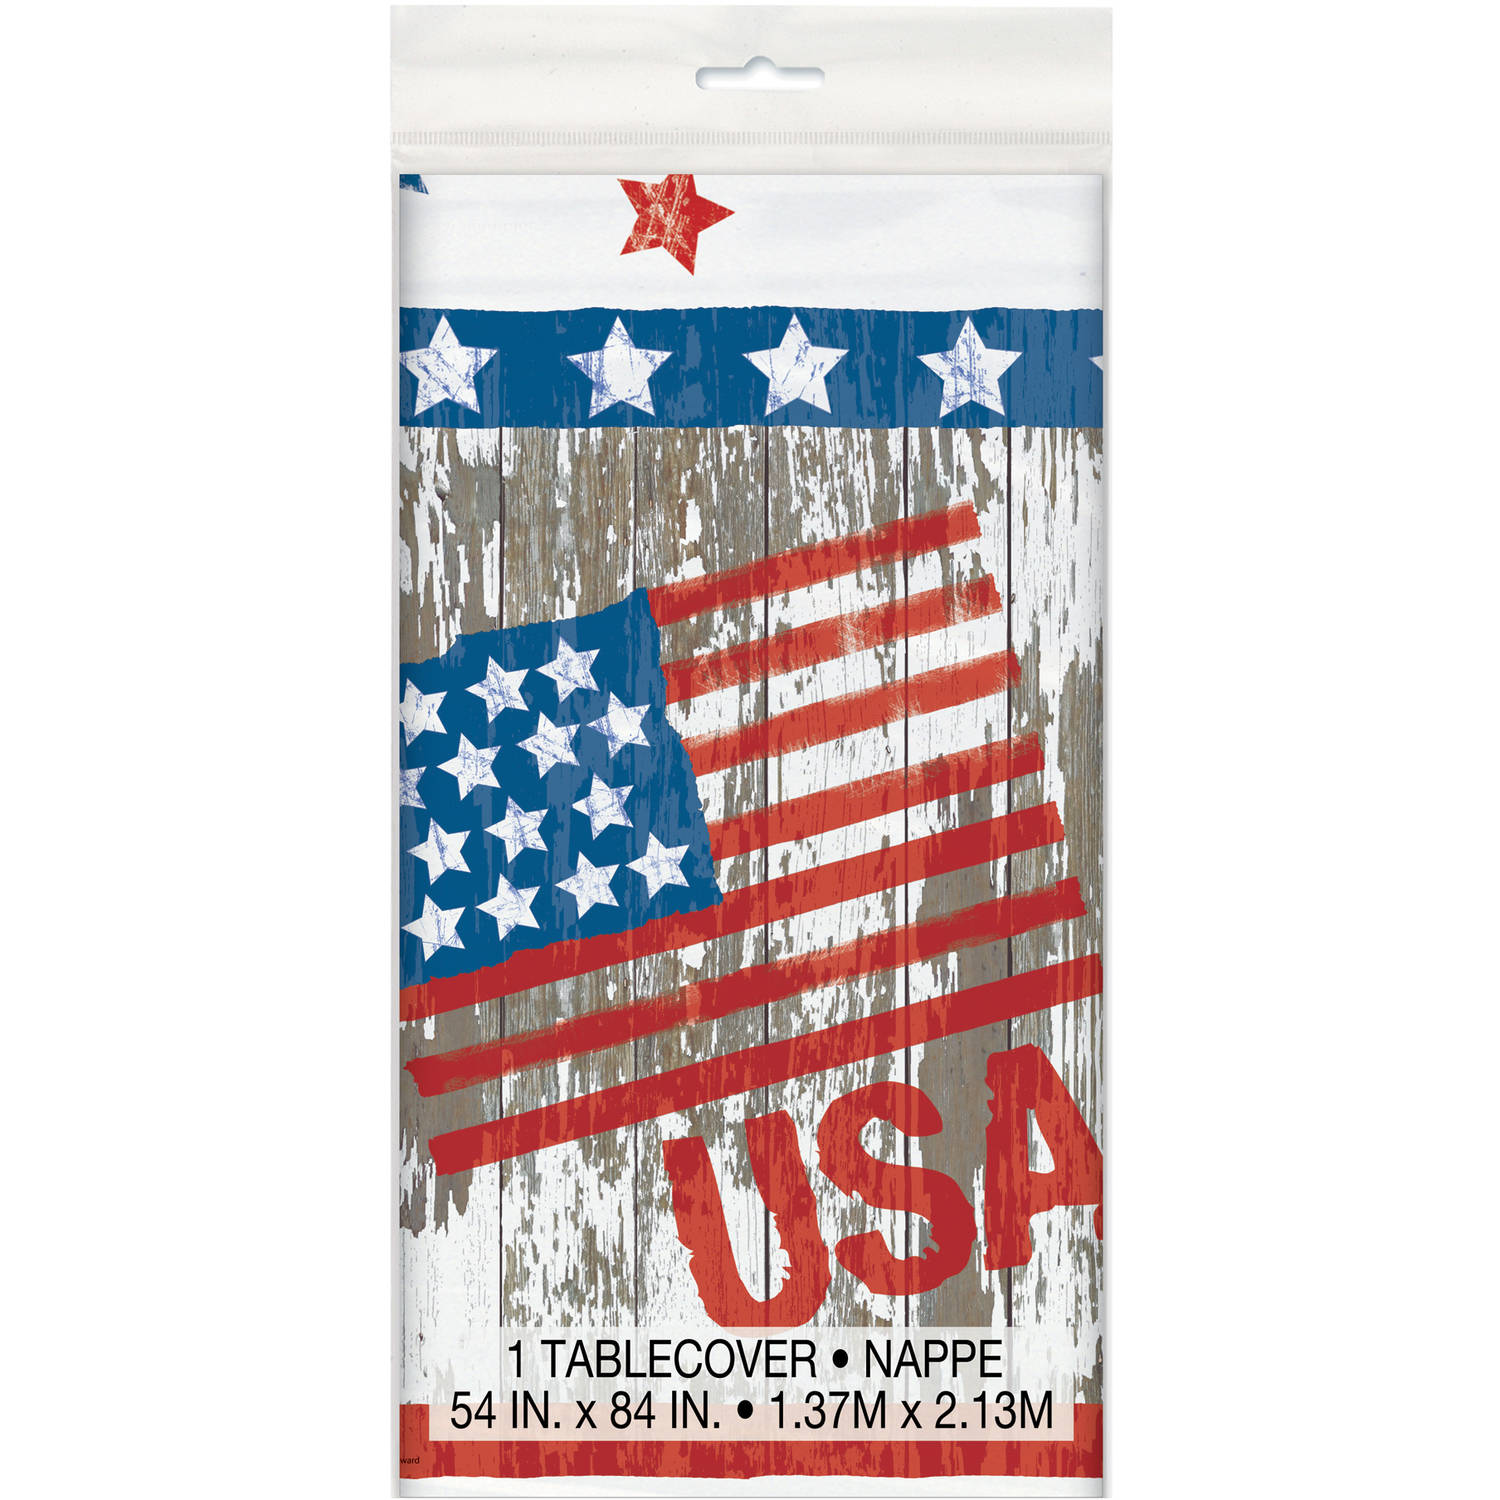 Vintage American Flag Plastic Tablecloth, 84 x 54 in, 1ct